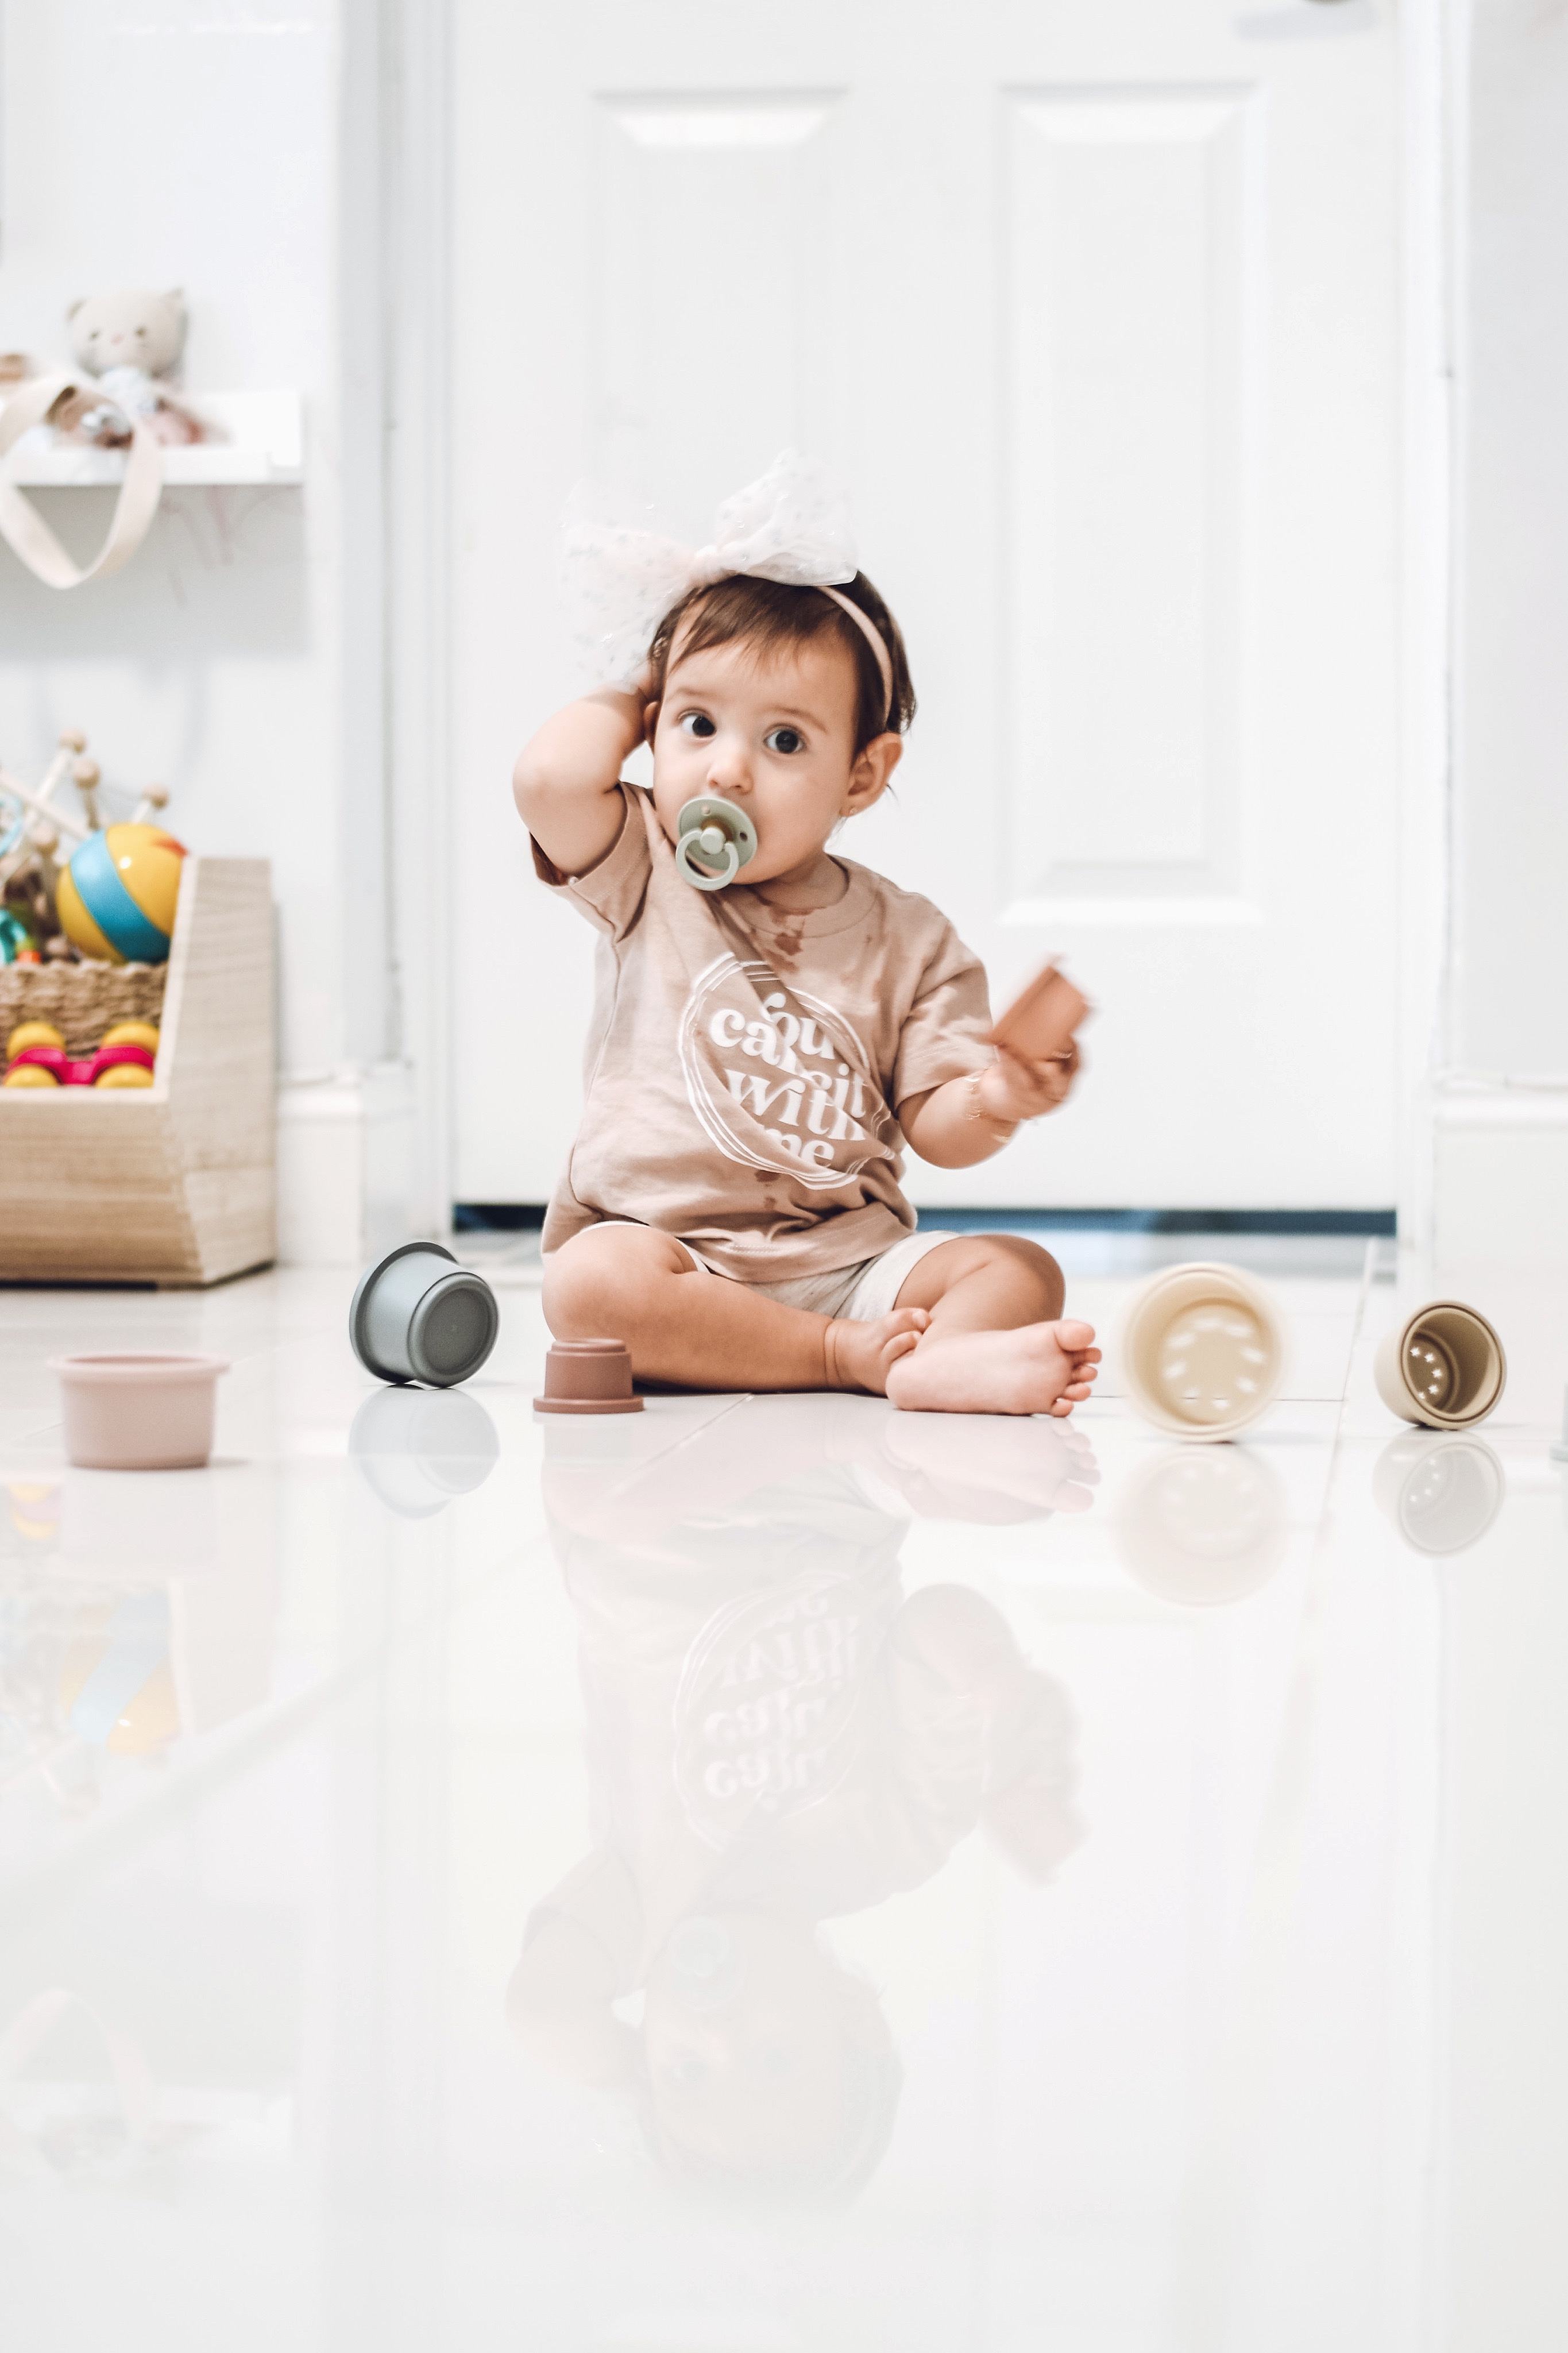 3  signs your baby is going through a growth spurt